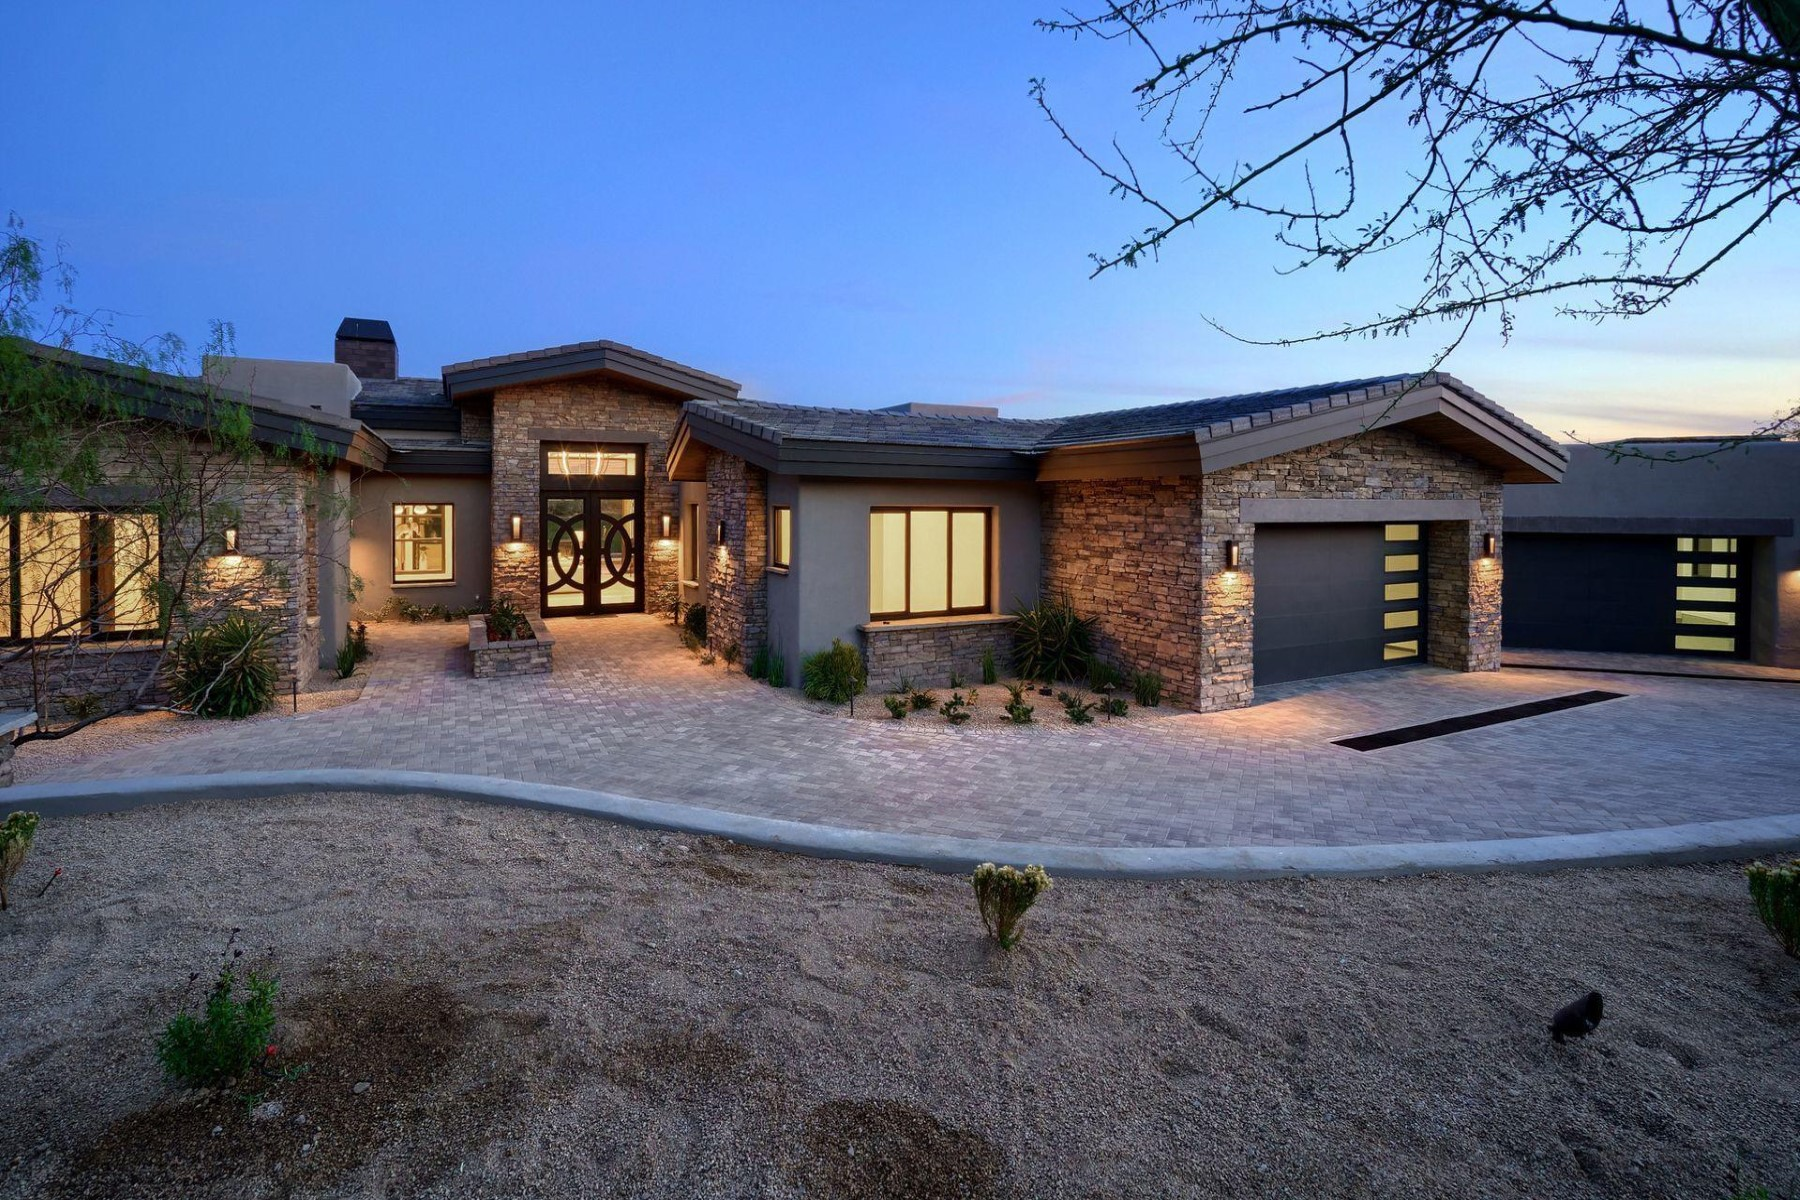 Single Family Homes for Sale at Saguaro Forest 41943 N STONE CUTTER DR Scottsdale, Arizona 85262 United States